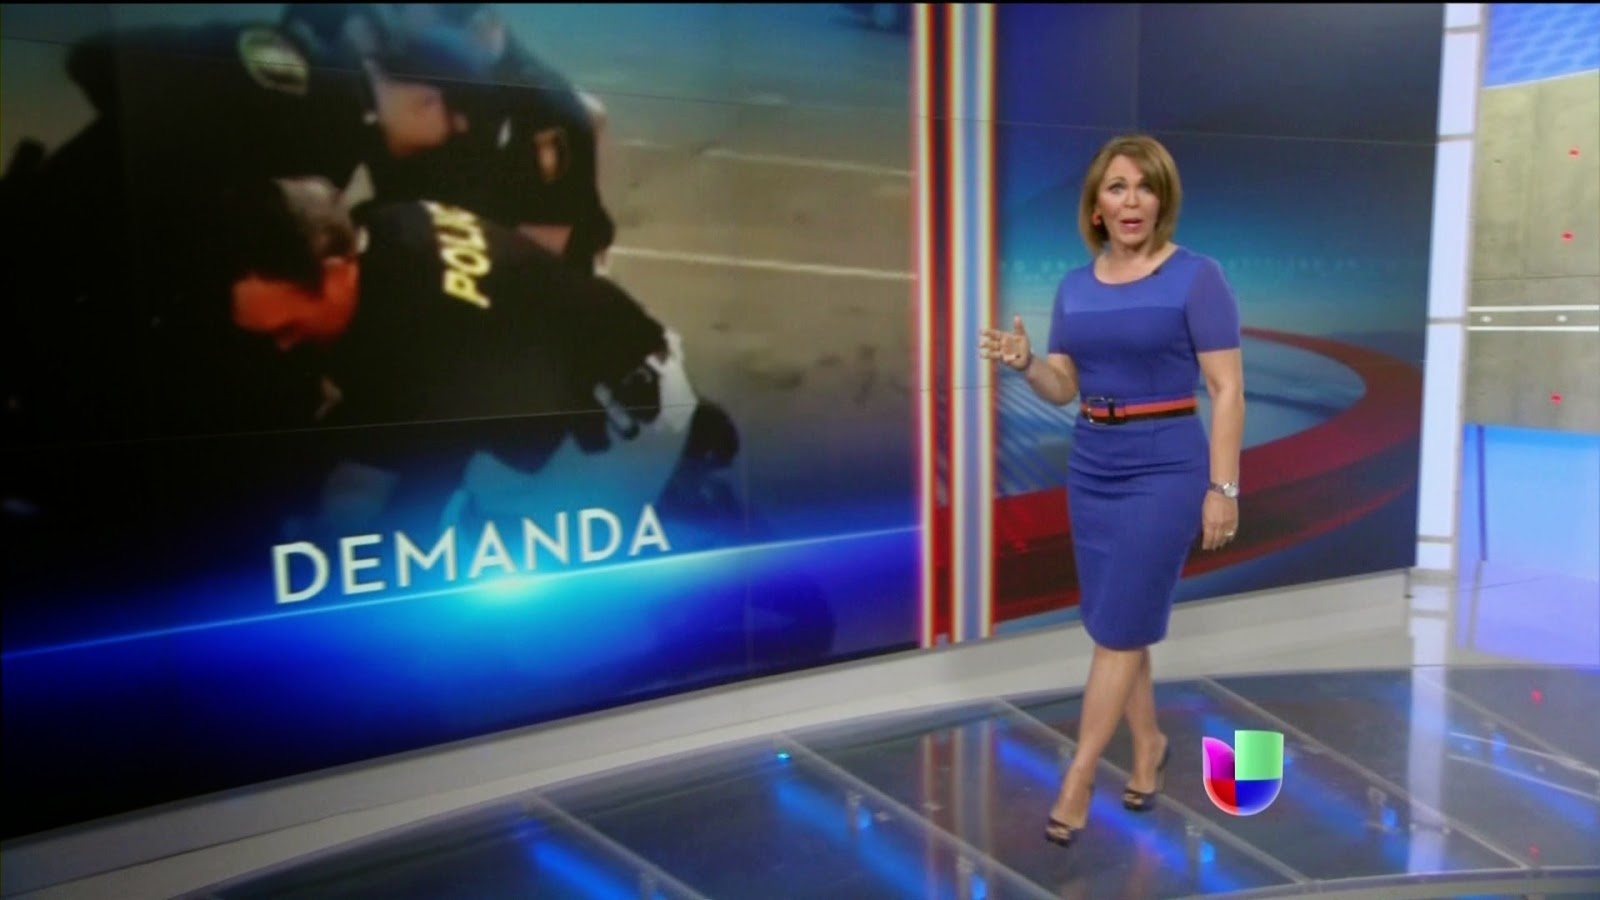 Women From TV Pictures: Maria Elena Salinas Pictures